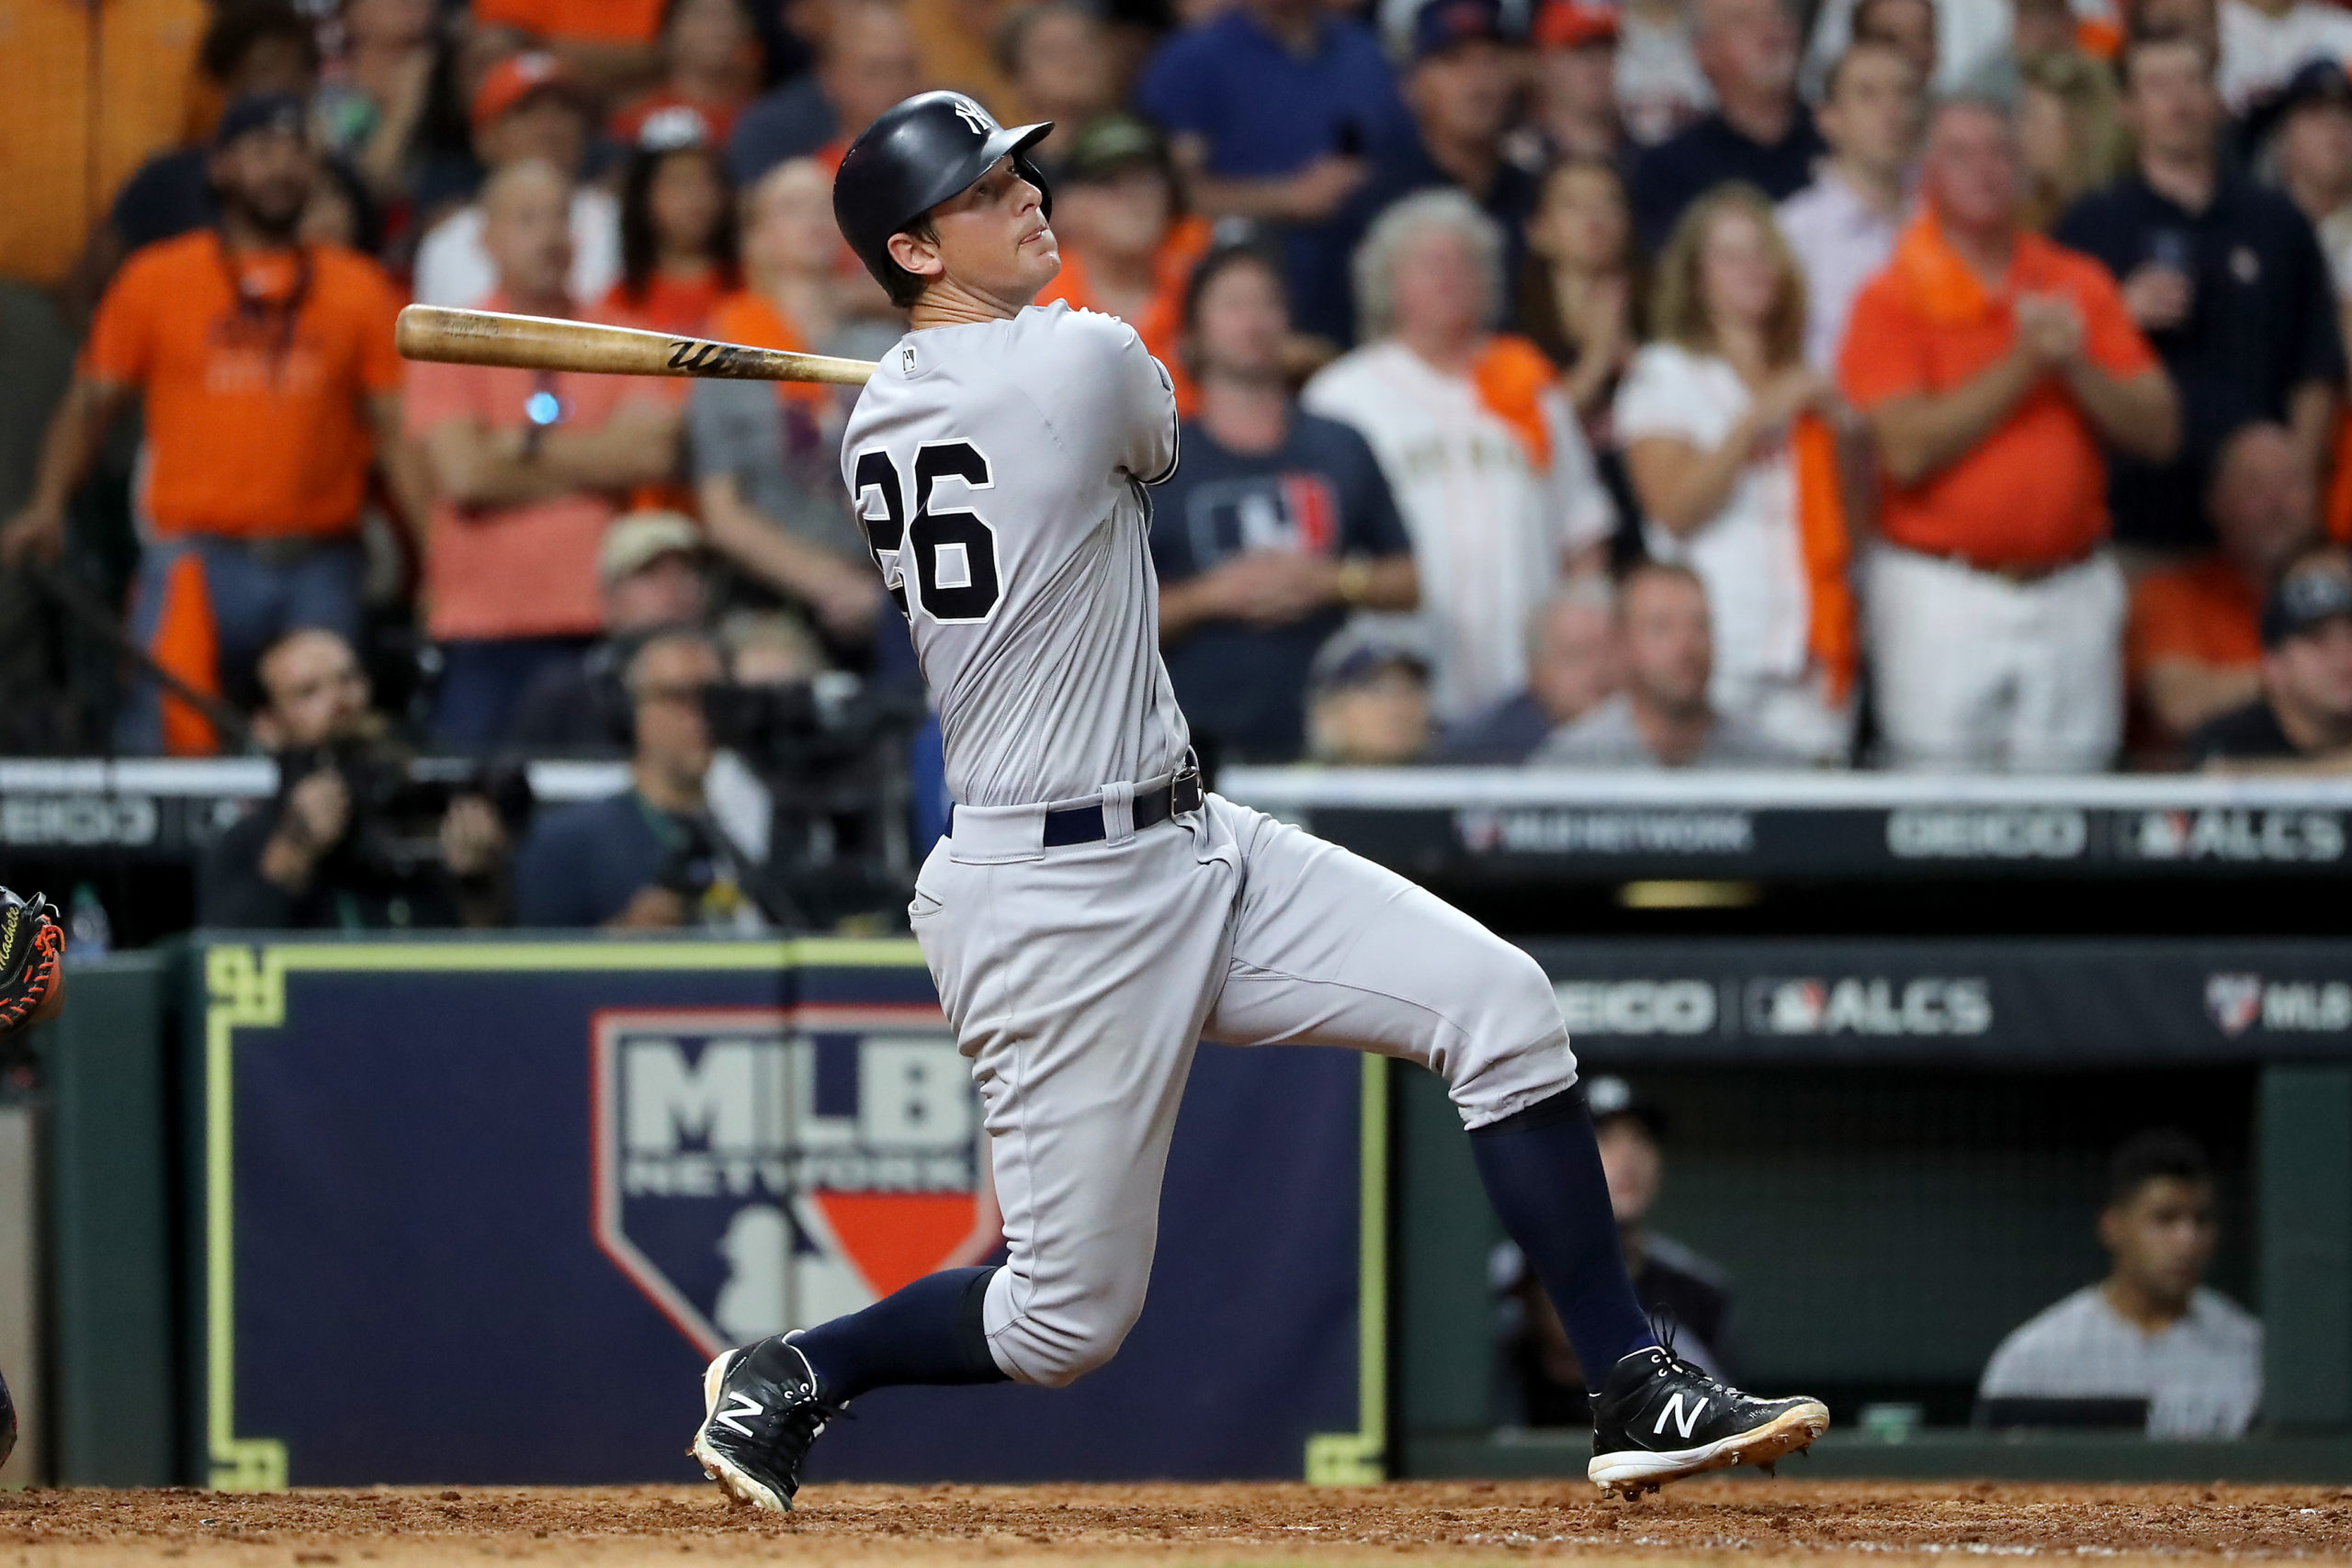 DJ LeMahieu of the New York Yankees watches the ball fly as he hits a home run